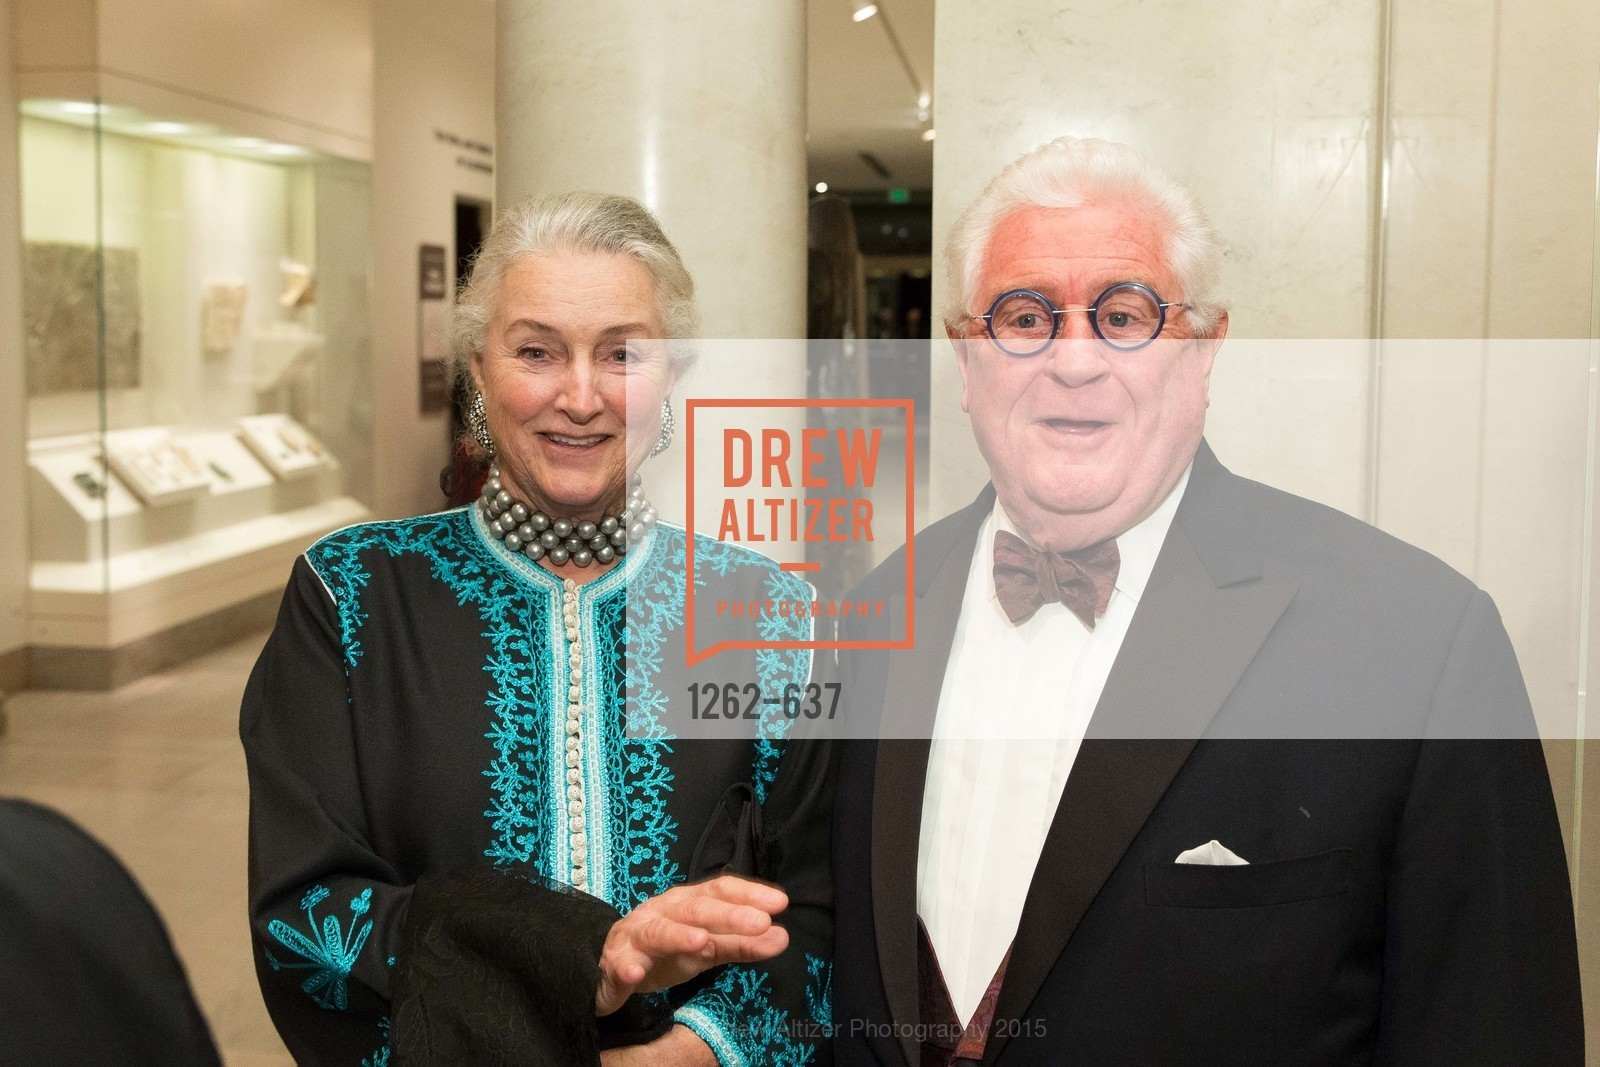 Elizabeth Swanson, Bob Hill, AN ELEGANT EVENING Presented by the Fine Arts Museums of San Francisco, Legion of Honor, Court of Honor. 100 34th Ave, December 8th, 2015,Drew Altizer, Drew Altizer Photography, full-service event agency, private events, San Francisco photographer, photographer California